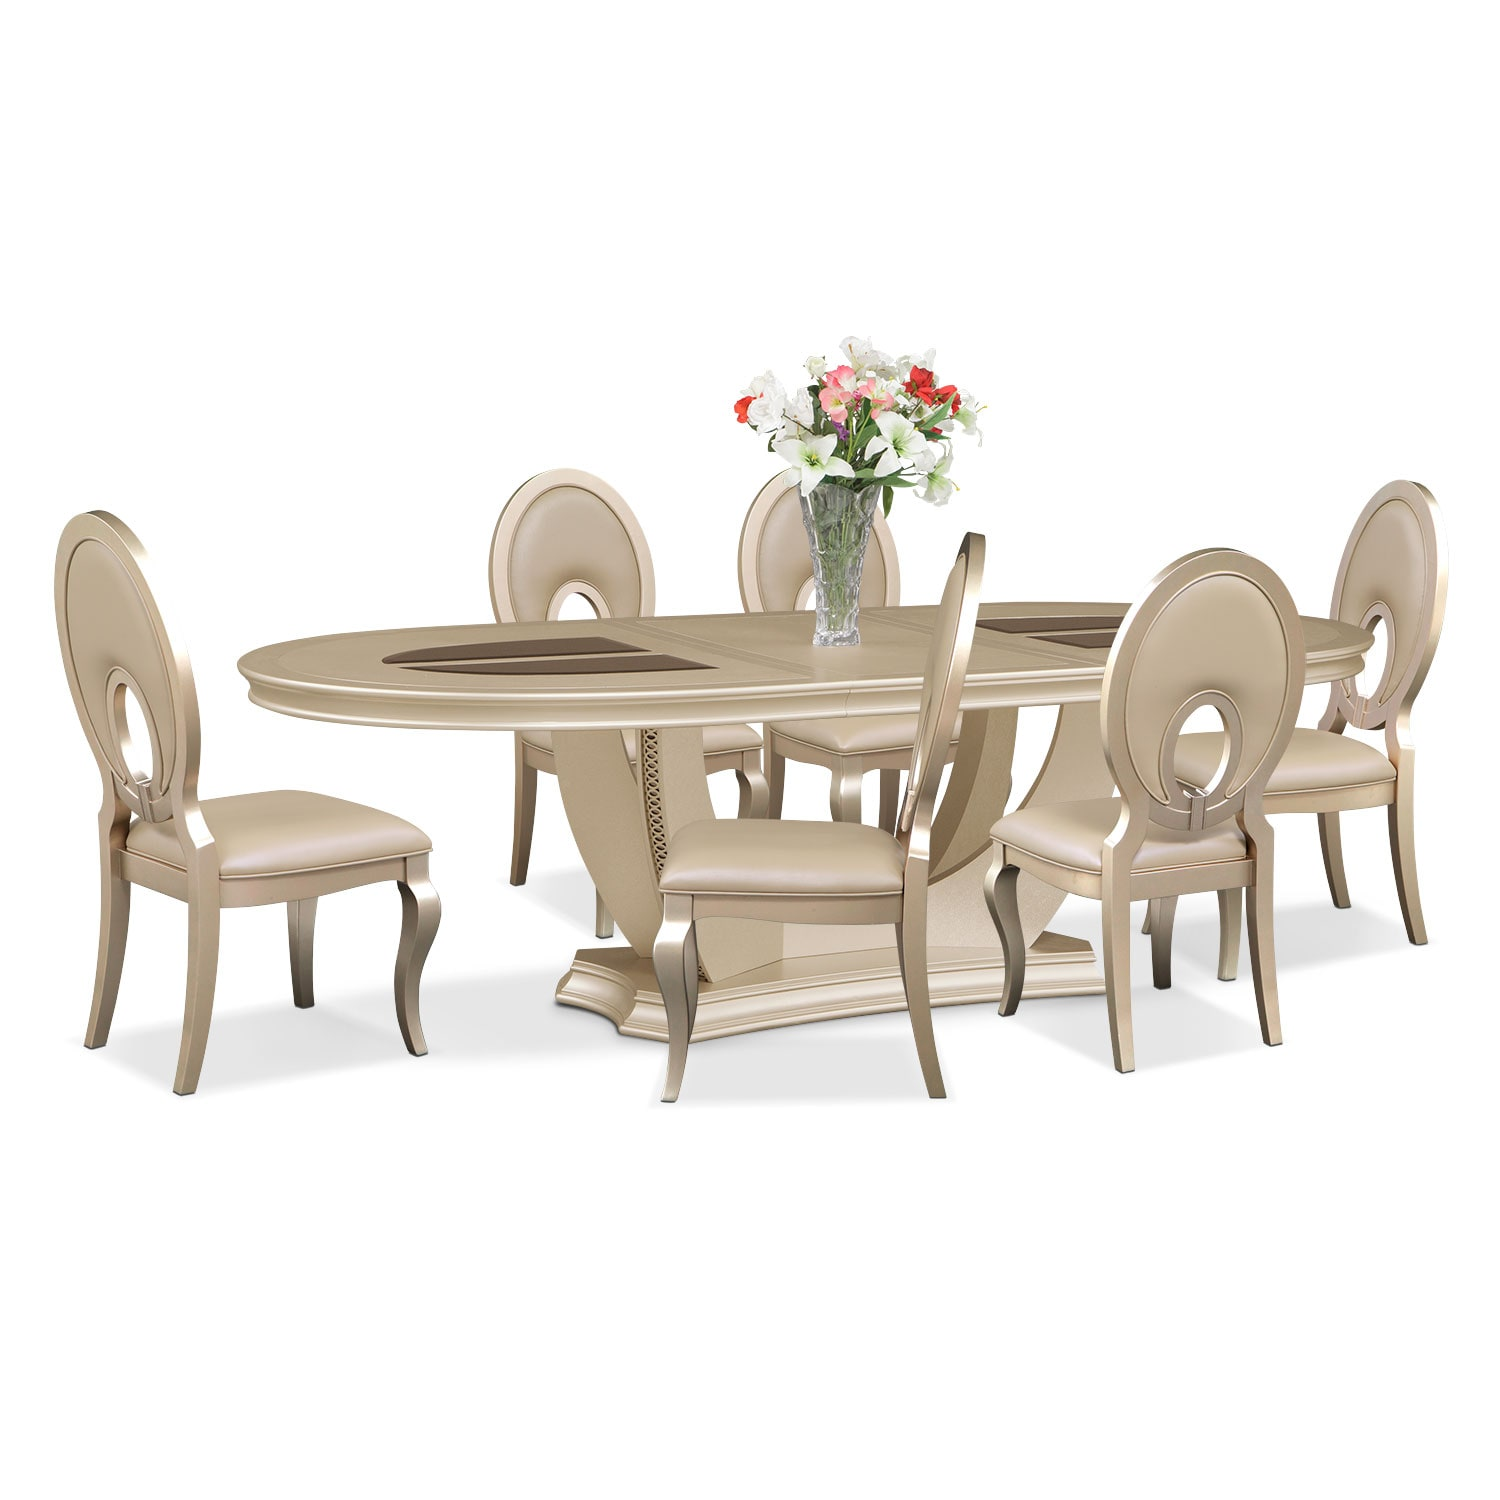 Allegro Oval Table and 6 Chairs - Platinum